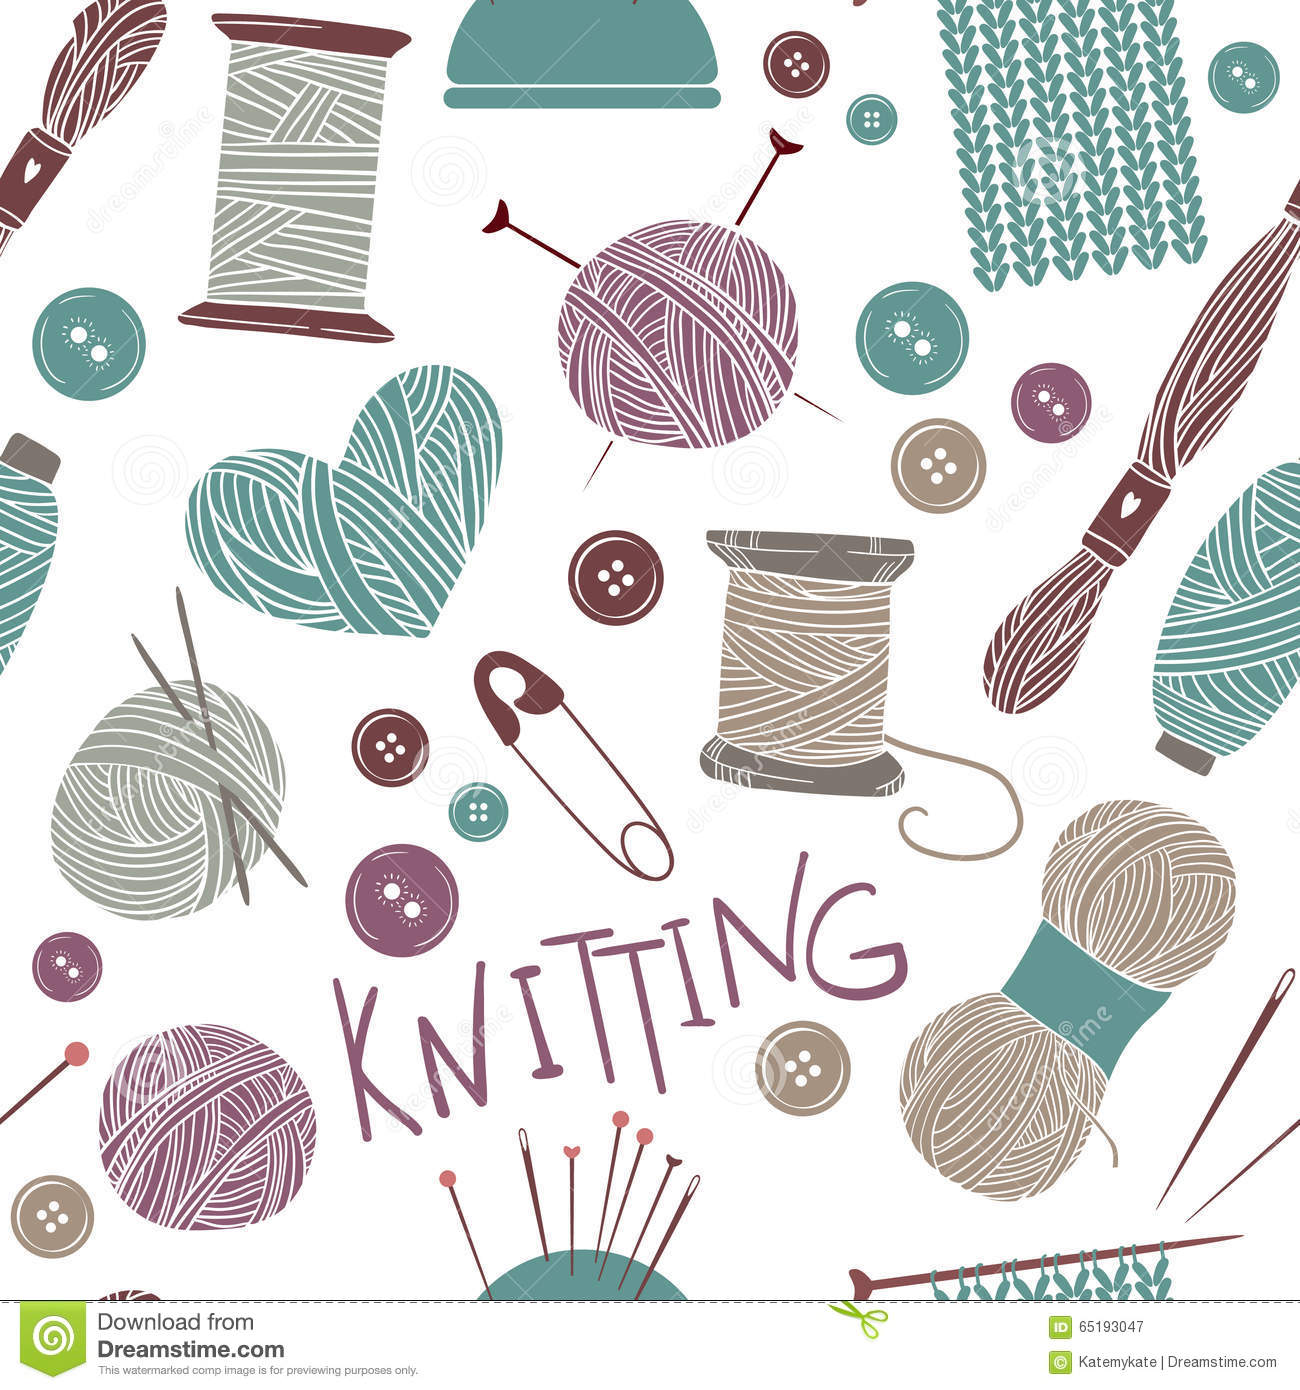 Free Knitting Icons Clipart : Hand drawn vector vintage illustration seamless pattern